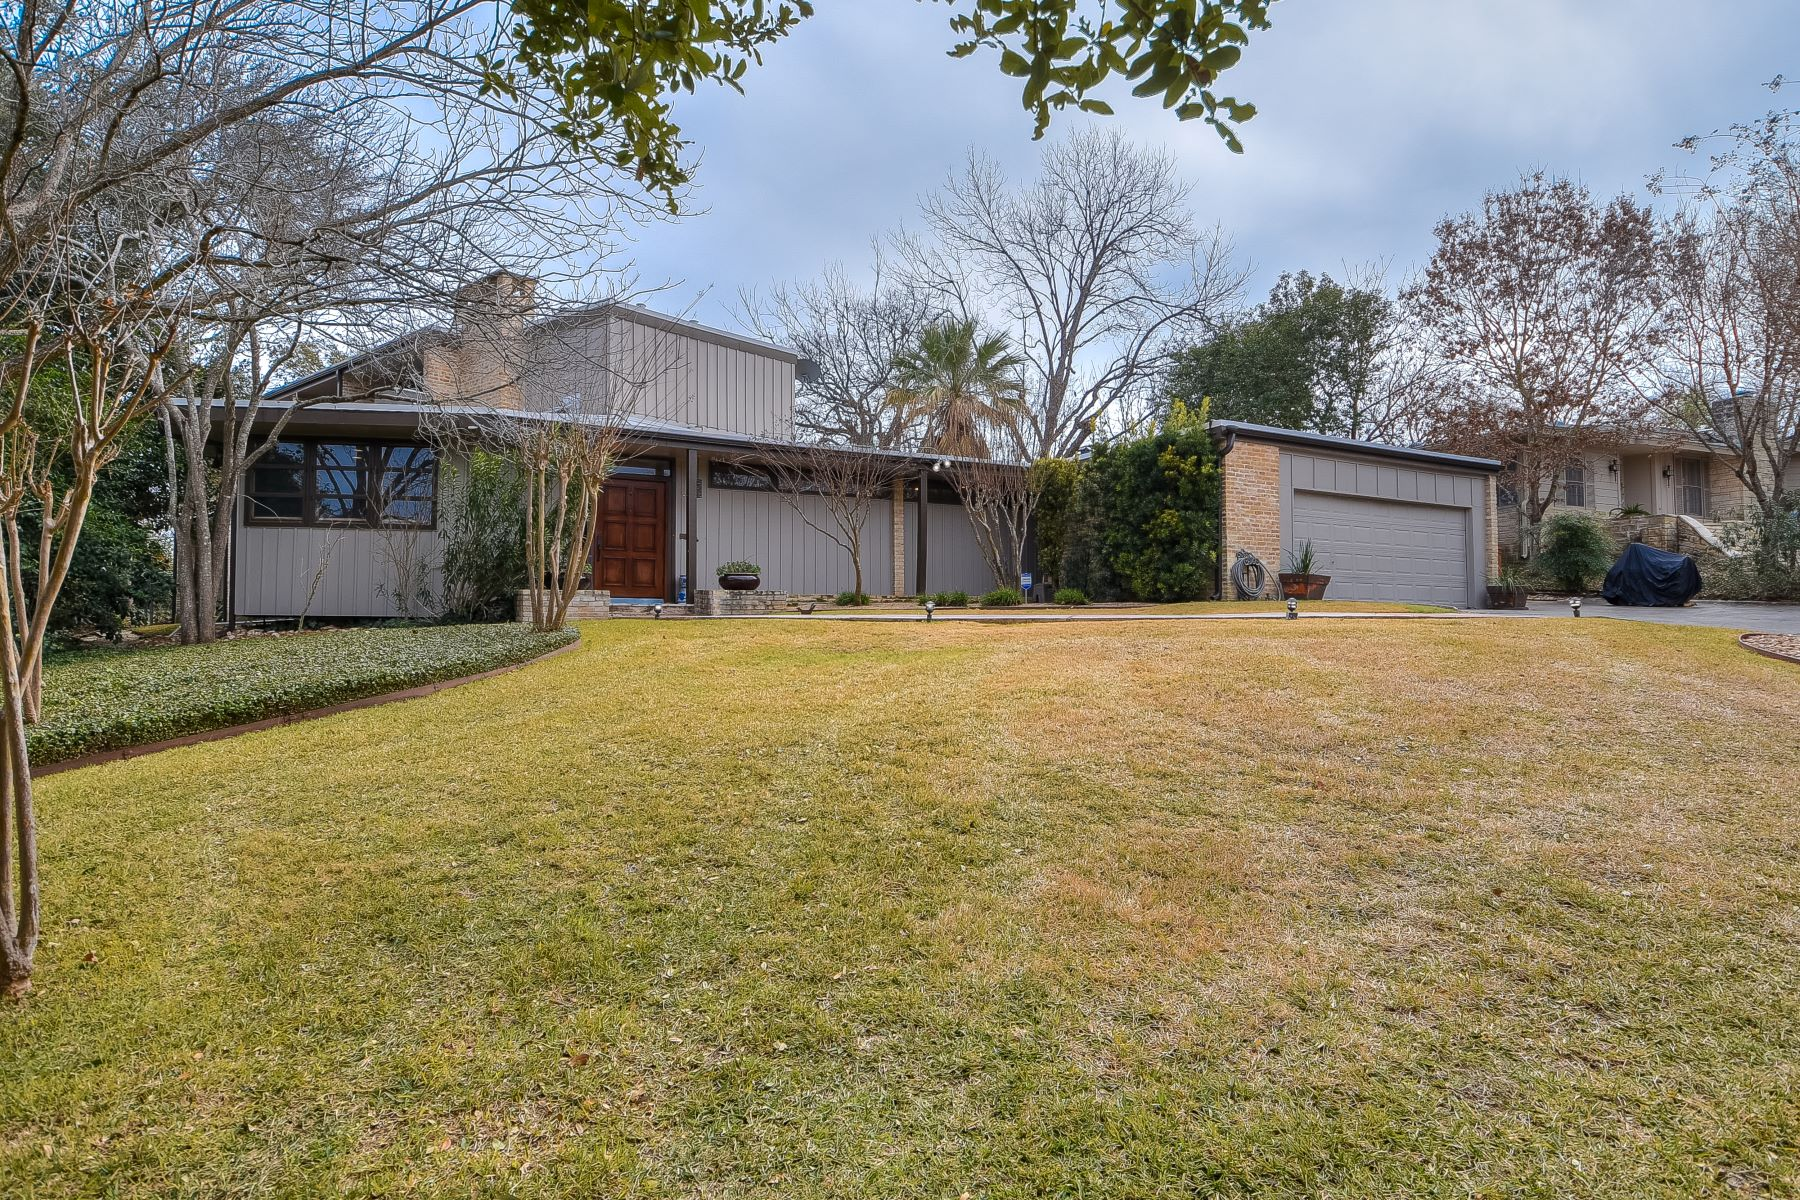 Single Family Home for Sale at Mid-Century Home in Bel Meade - 78209 126 East Brandon Drive San Antonio, Texas 78209 United States